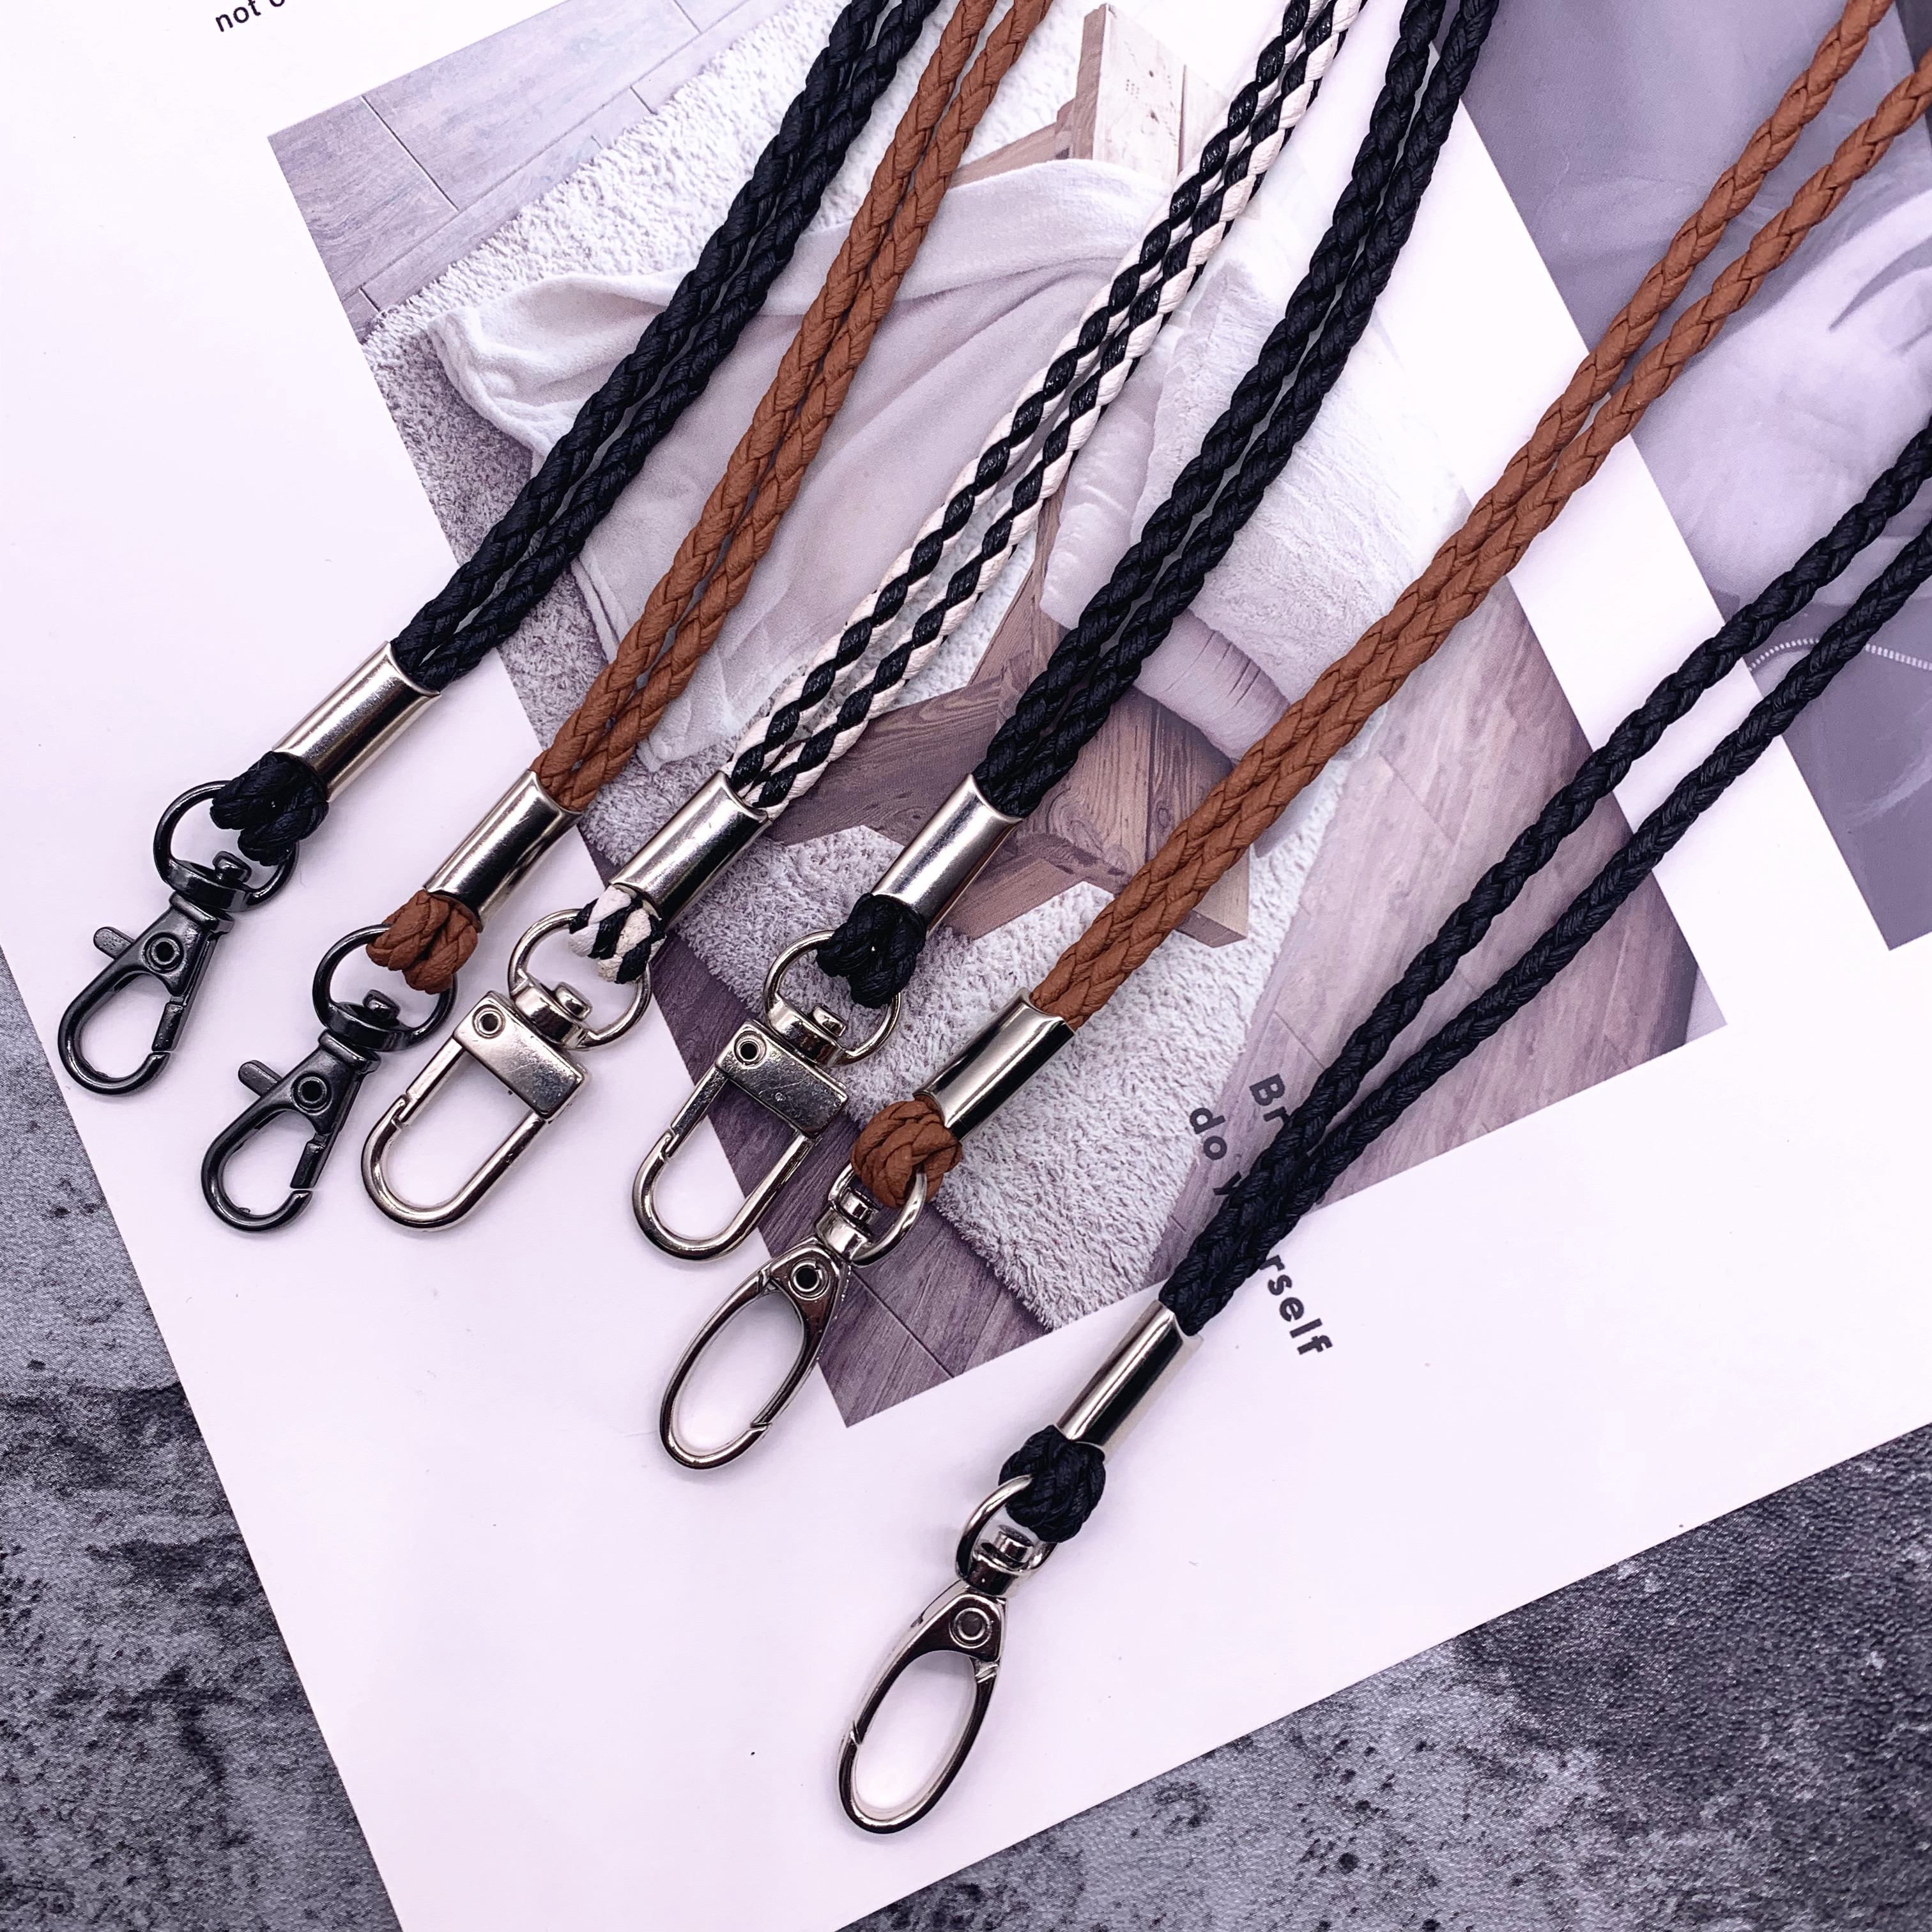 High Quality Leather Rope PU Braided Straps For Keys Lanyard Mobile Keychains Neck Straps Anti-theft Mobile Phone Chain